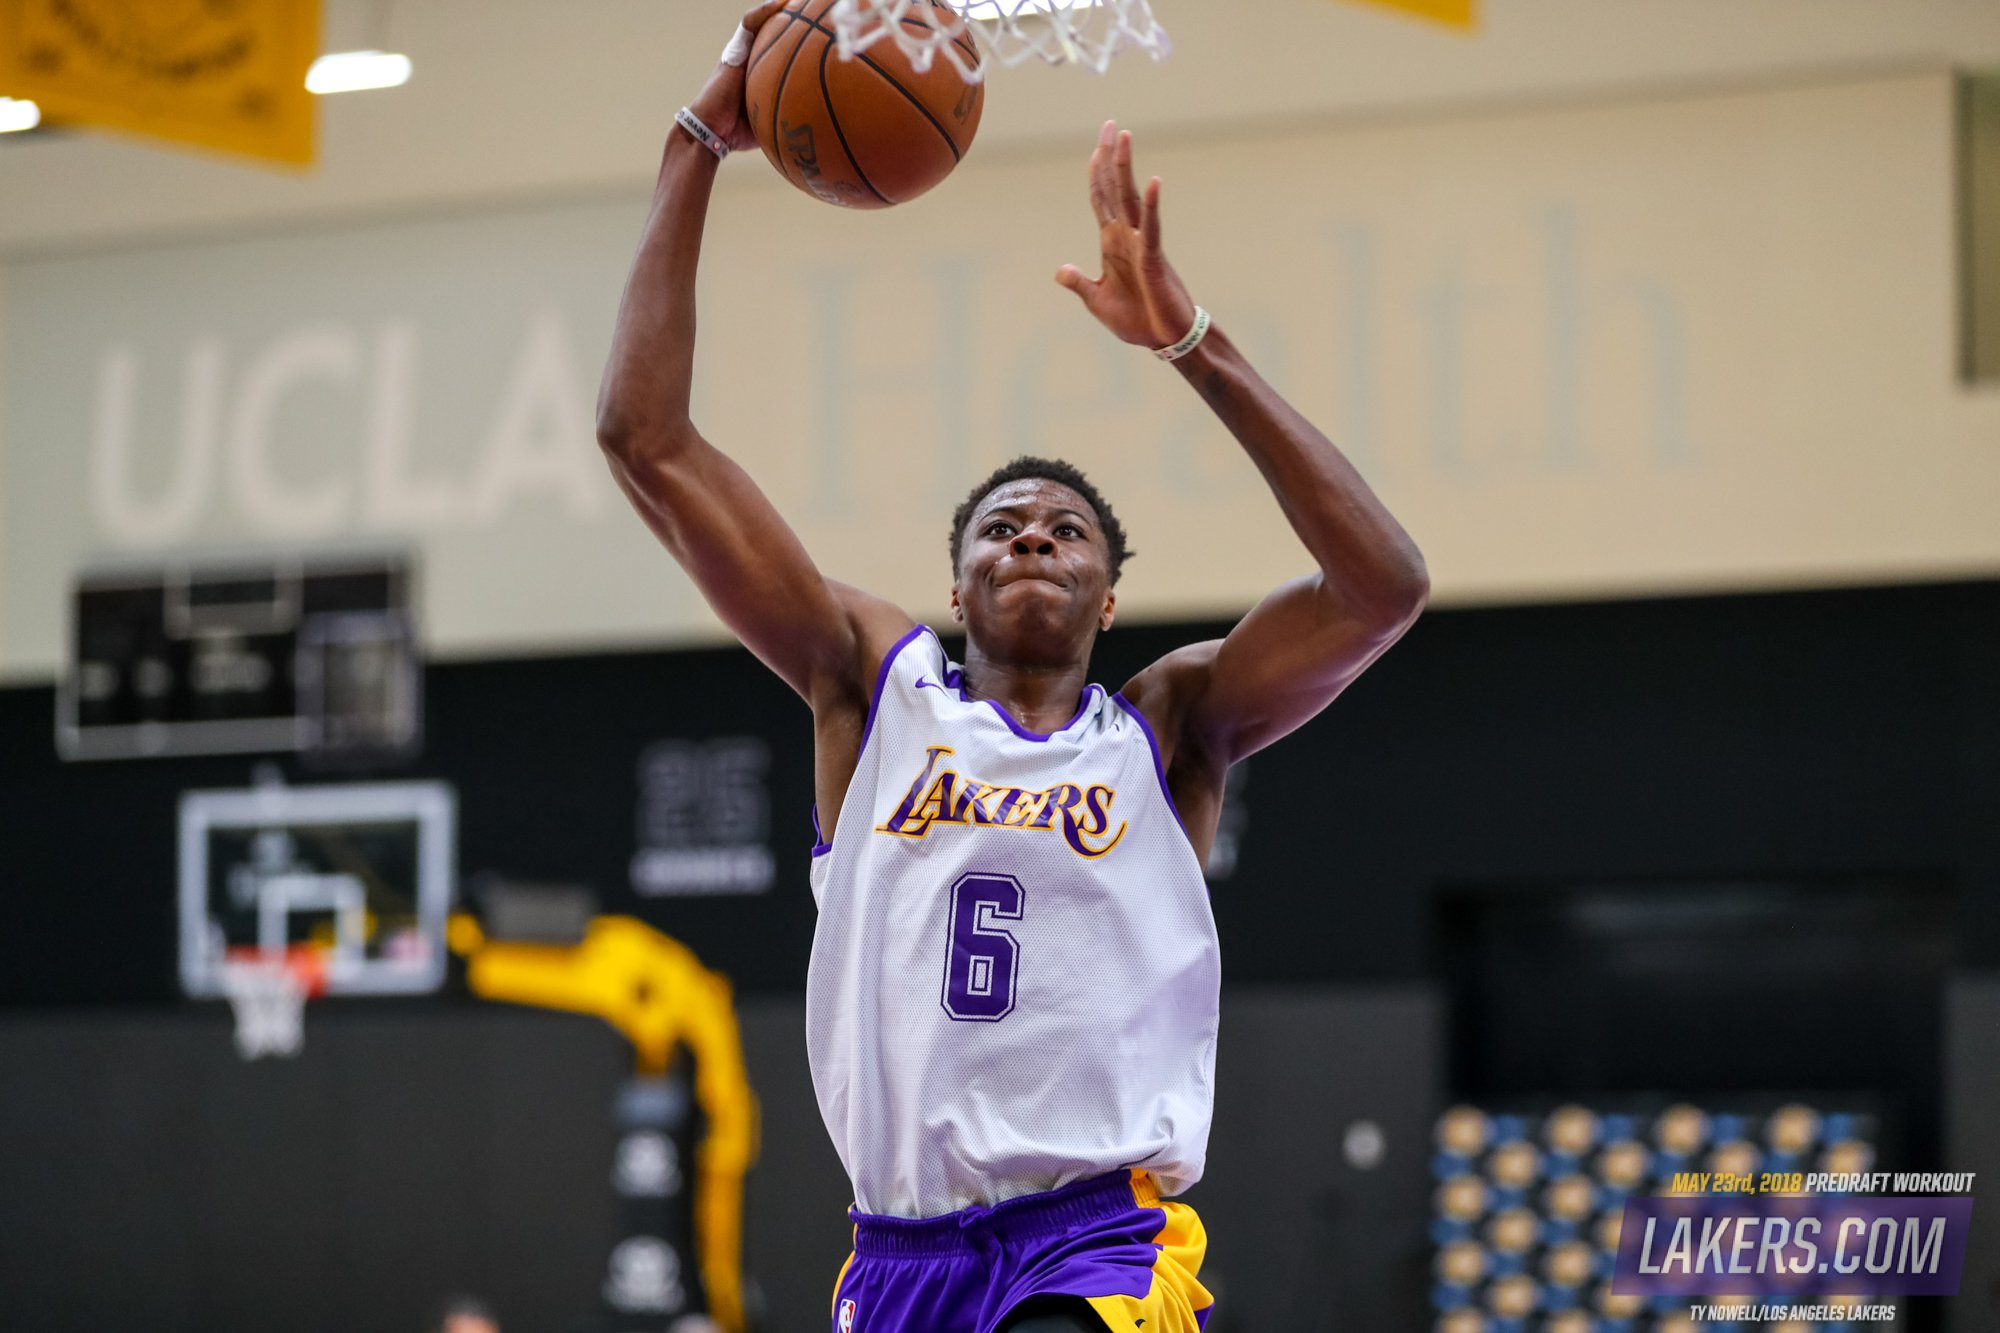 Take an inside look at Wednesday's #LakeShow draft workout: https://t.co/0D3Ae3z1km https://t.co/D5fUzkMd0E